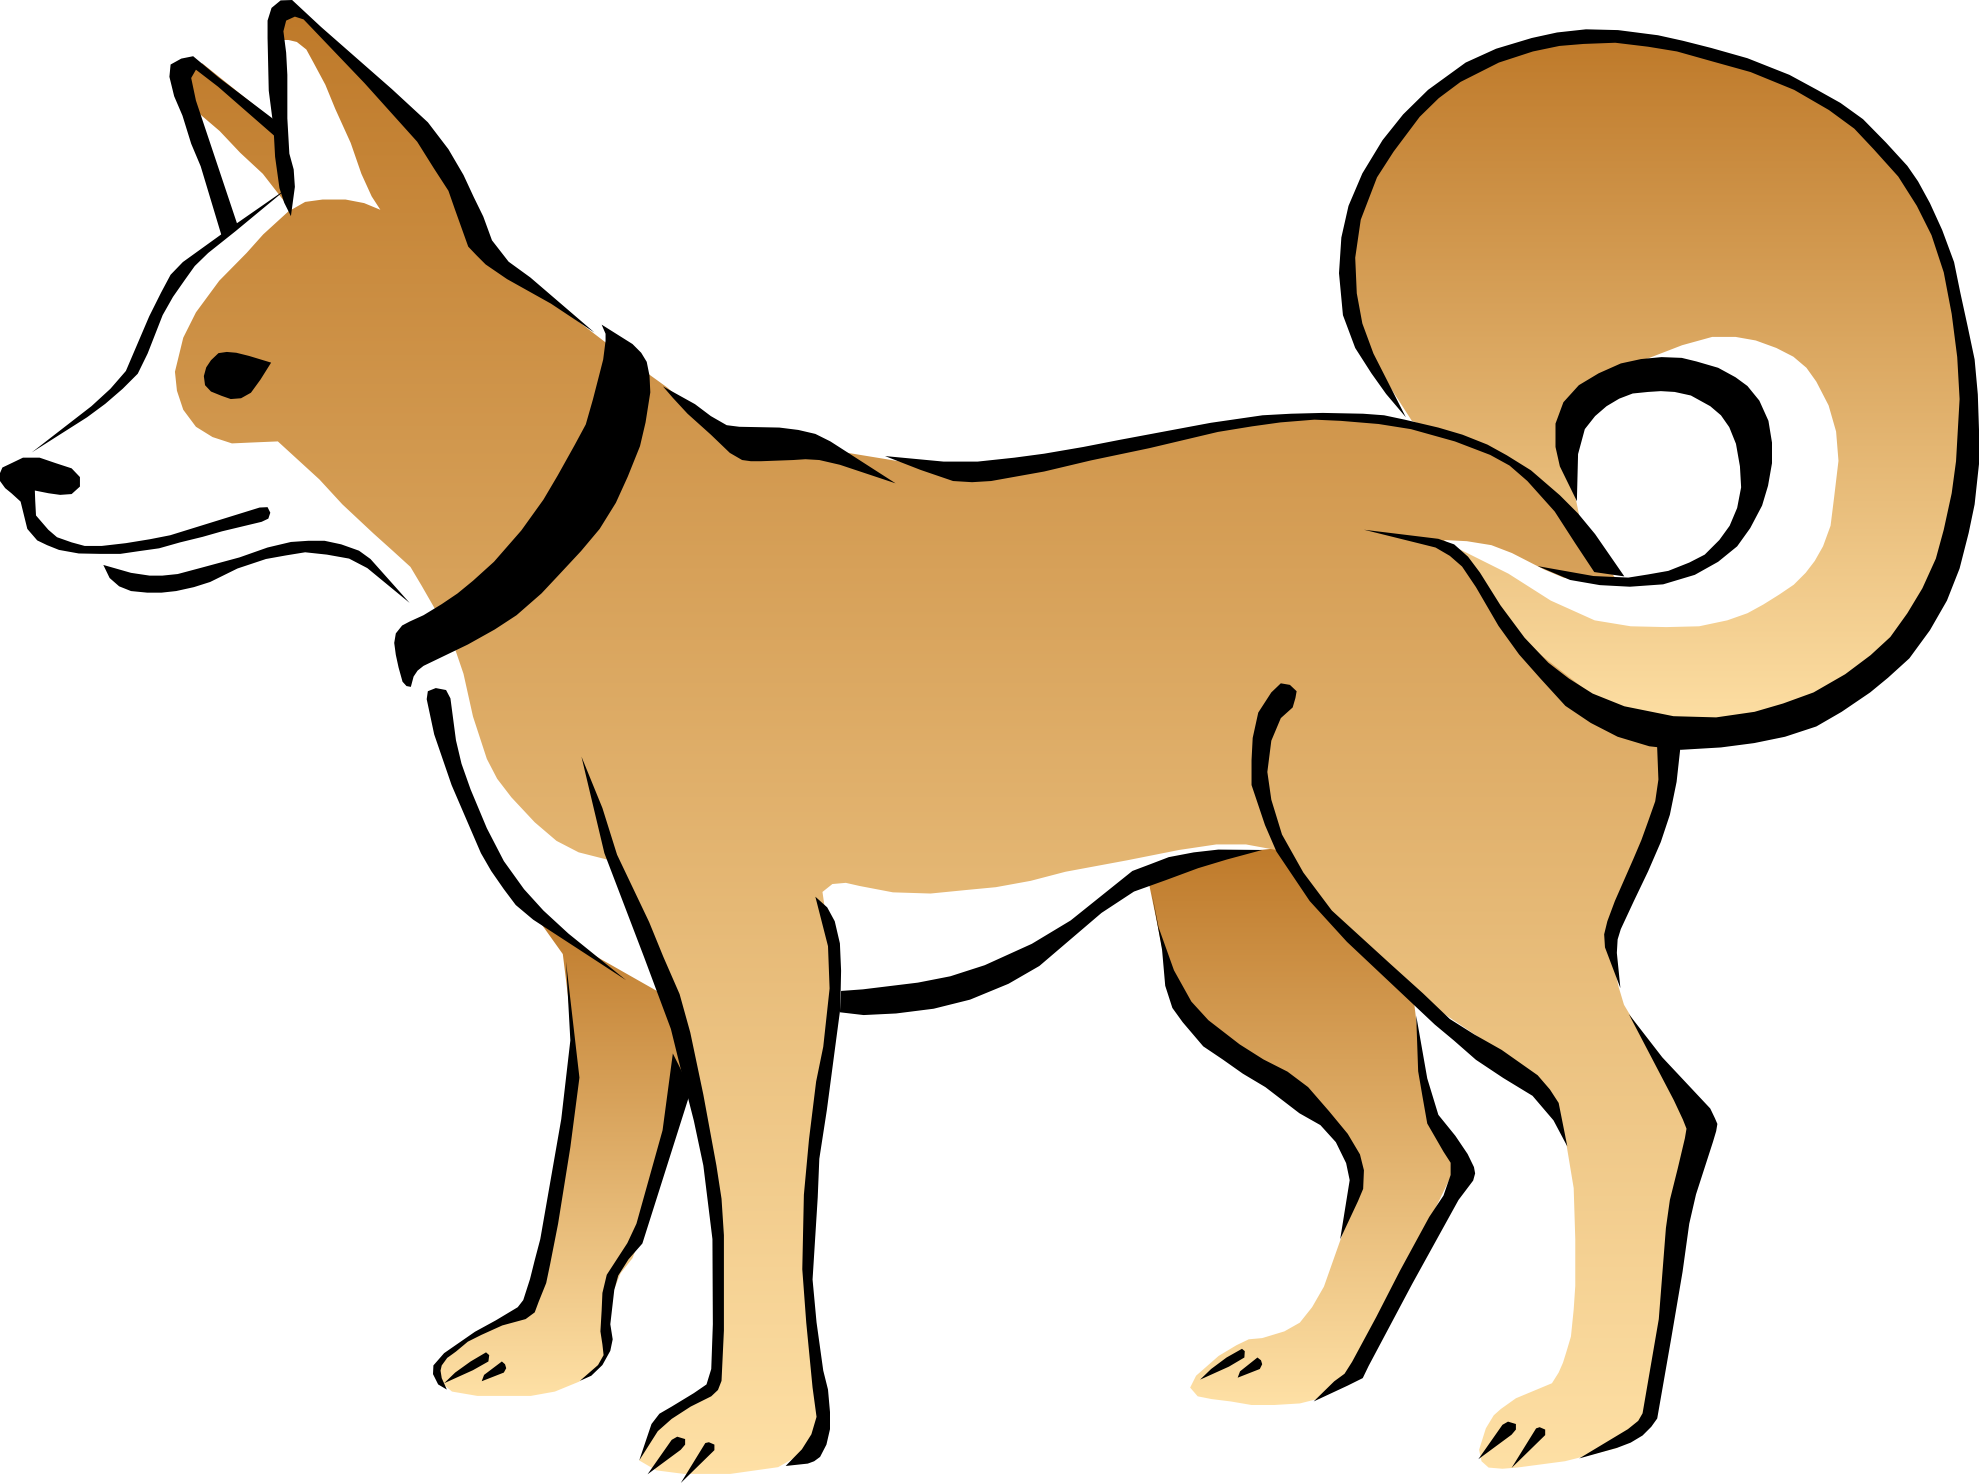 royalty free library Dog . Dogs clipart.